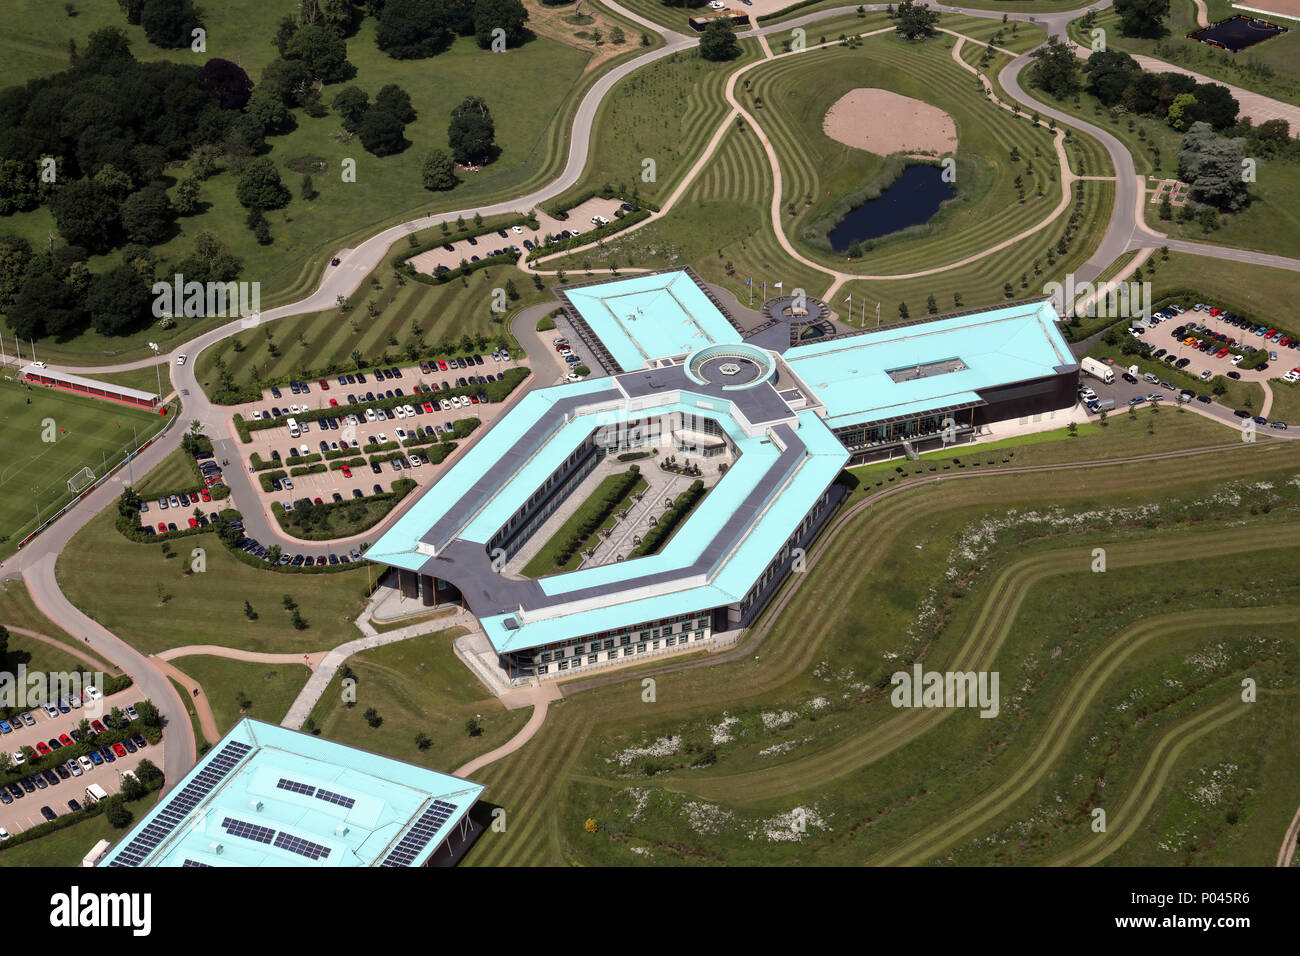 aerial view of St George's Park, England training ground run by the FA - Stock Image